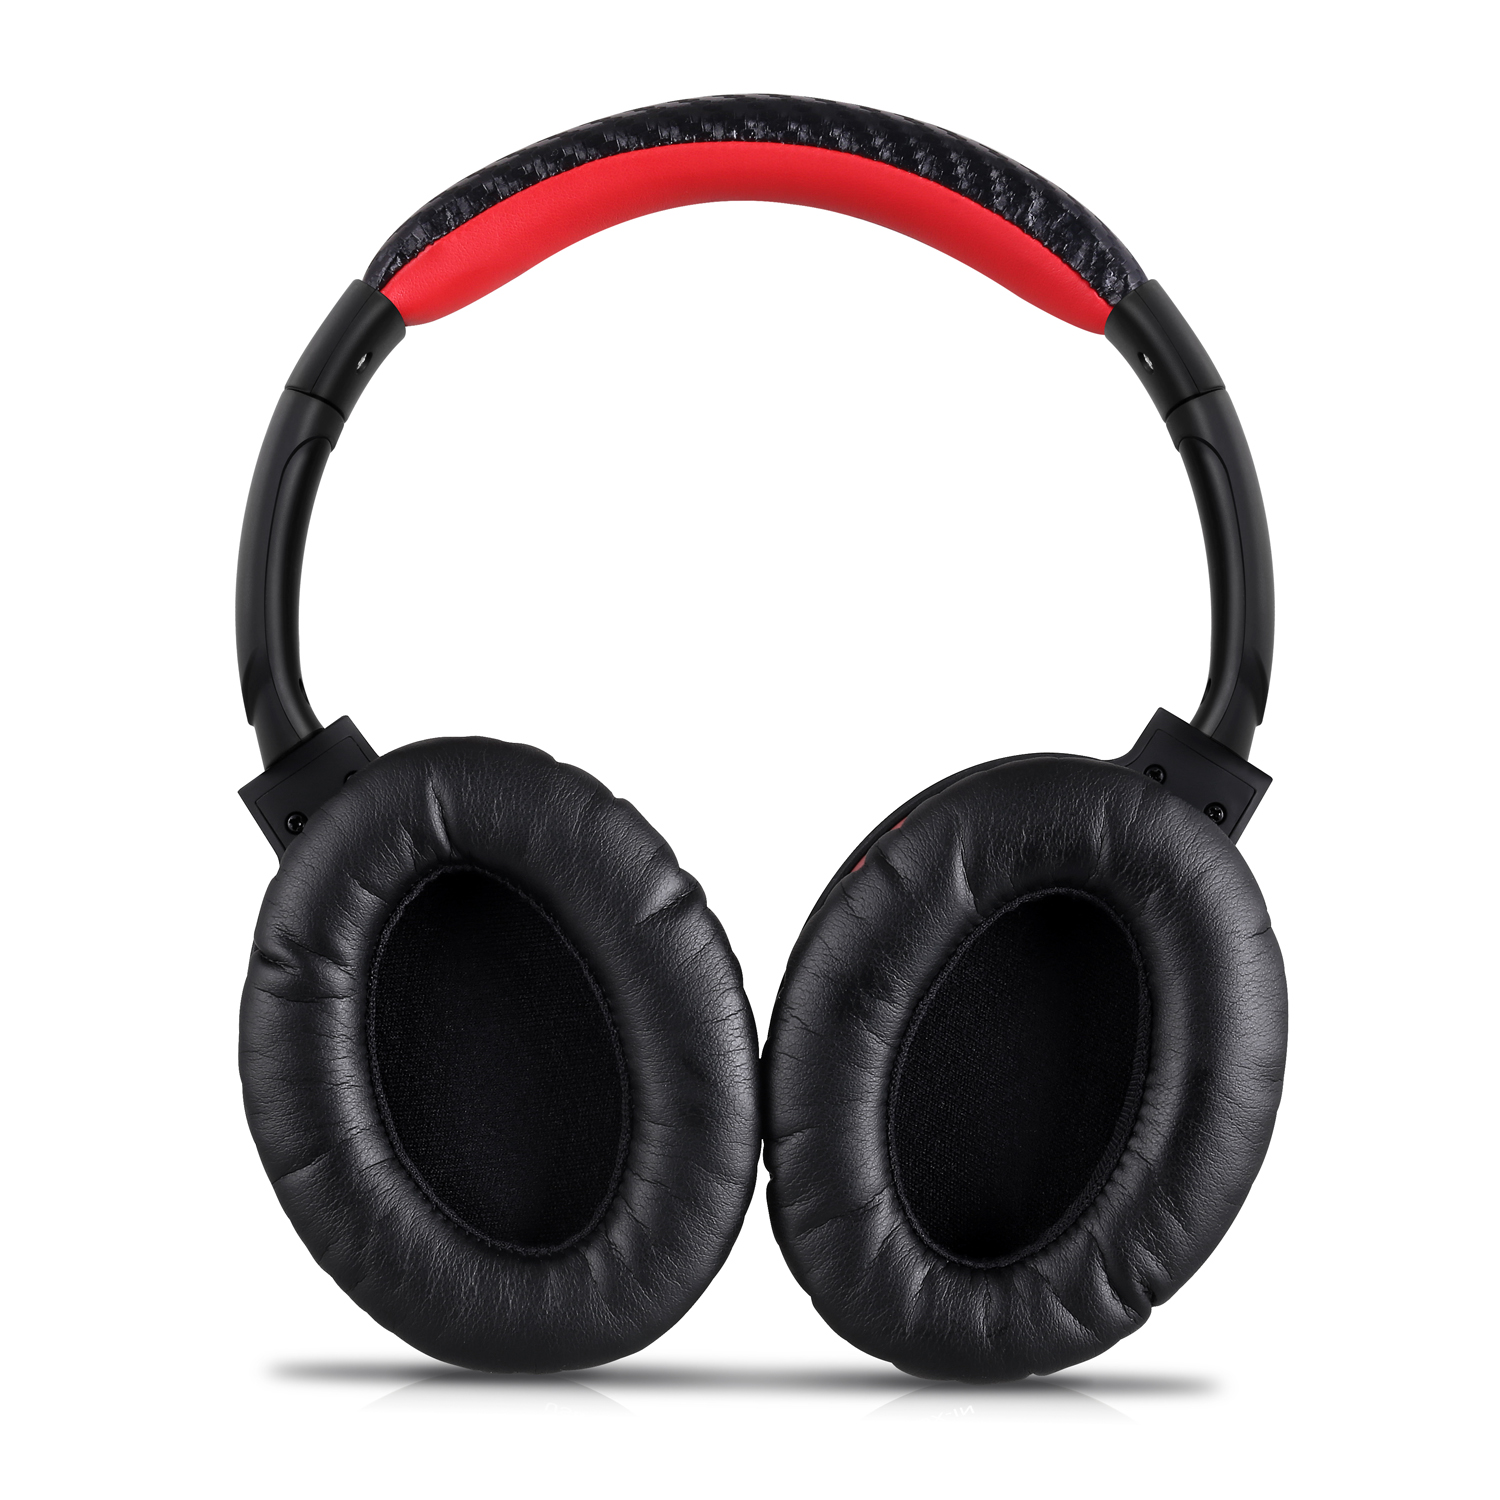 ausdom anc7 active noise cancelling bluetooth headphone impressions thread global review wanted. Black Bedroom Furniture Sets. Home Design Ideas